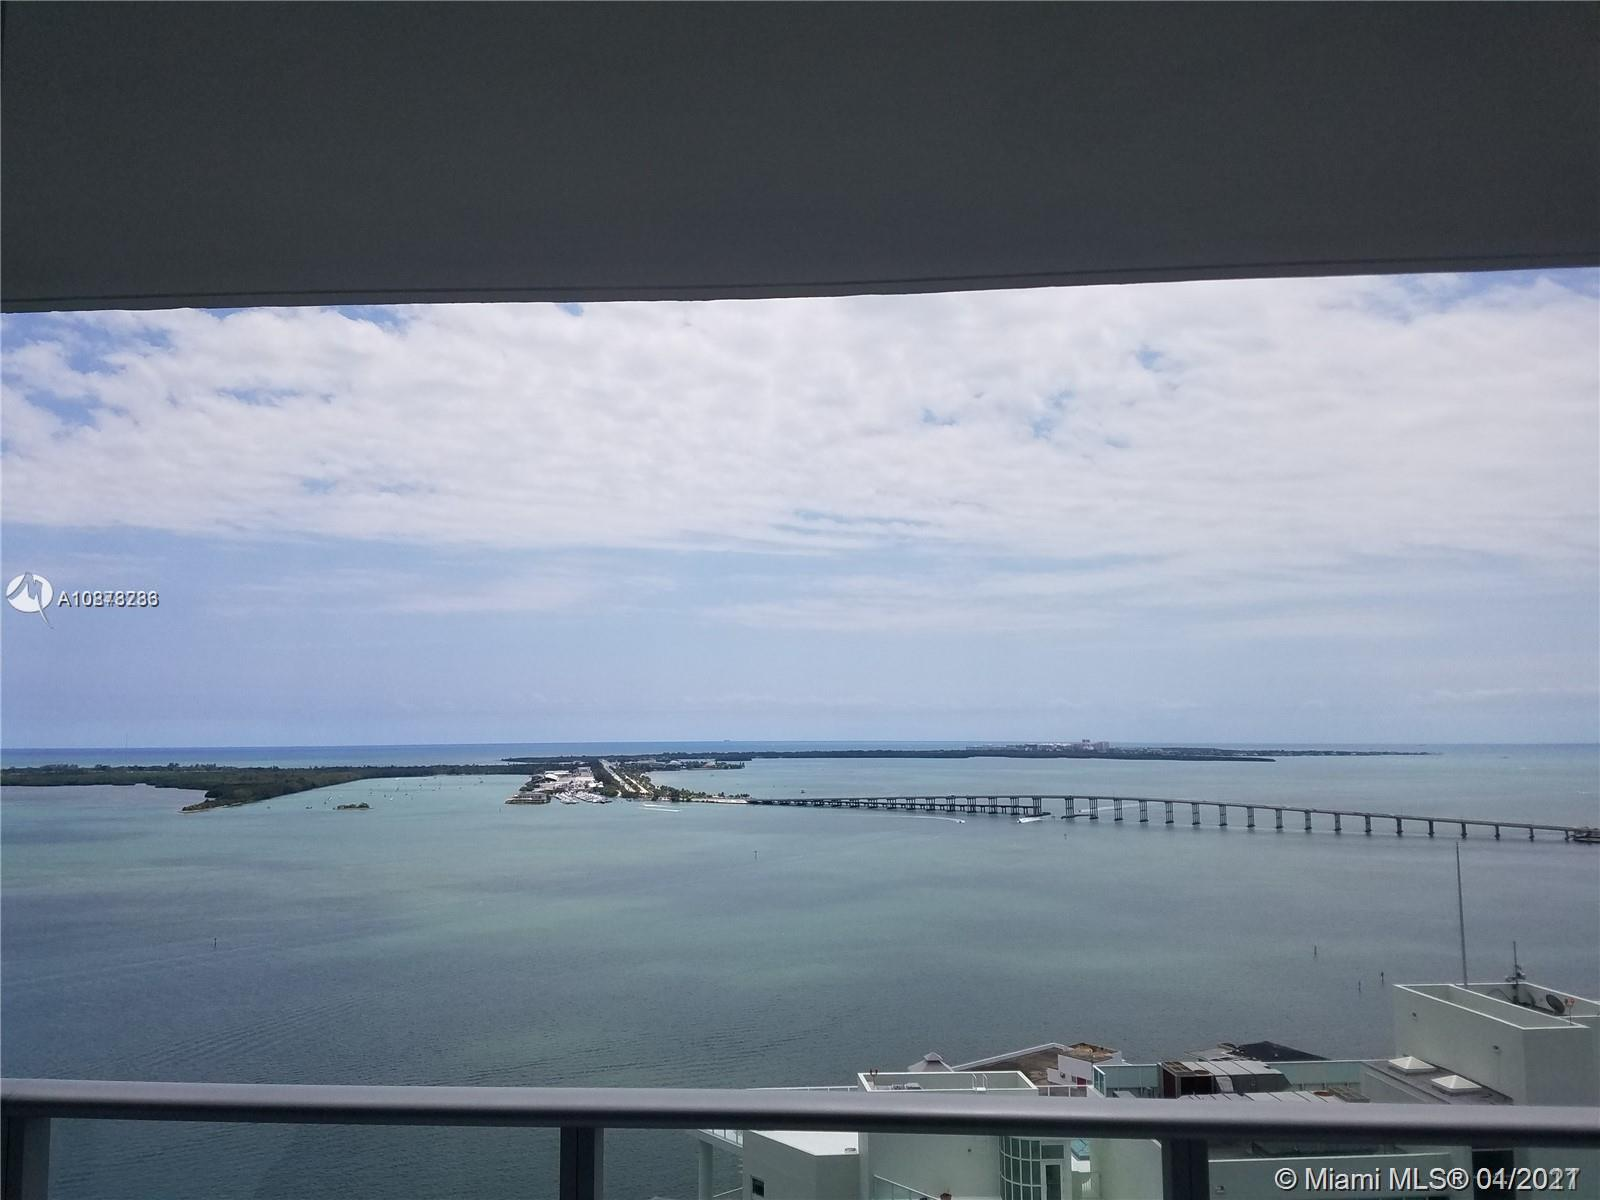 WATER VIEW THROUGHOUT THE APARTMENT! Beautiful condo 2+den and 2 bathrooms. White Porcelain flooring - Private balcony offering breathtaking views of Biscayne Bay. Gourmet kitchen and bathroom with imported European cabinetry, premium appliances, and finishes. Amenities include 24-hr welcome desk, 24hr guest valet, lounge, HD screening room with10-ft screen theater-style seating, 50 ft. long lap pool with poolside cabanas, sauna, and spa and also Roof top pool.